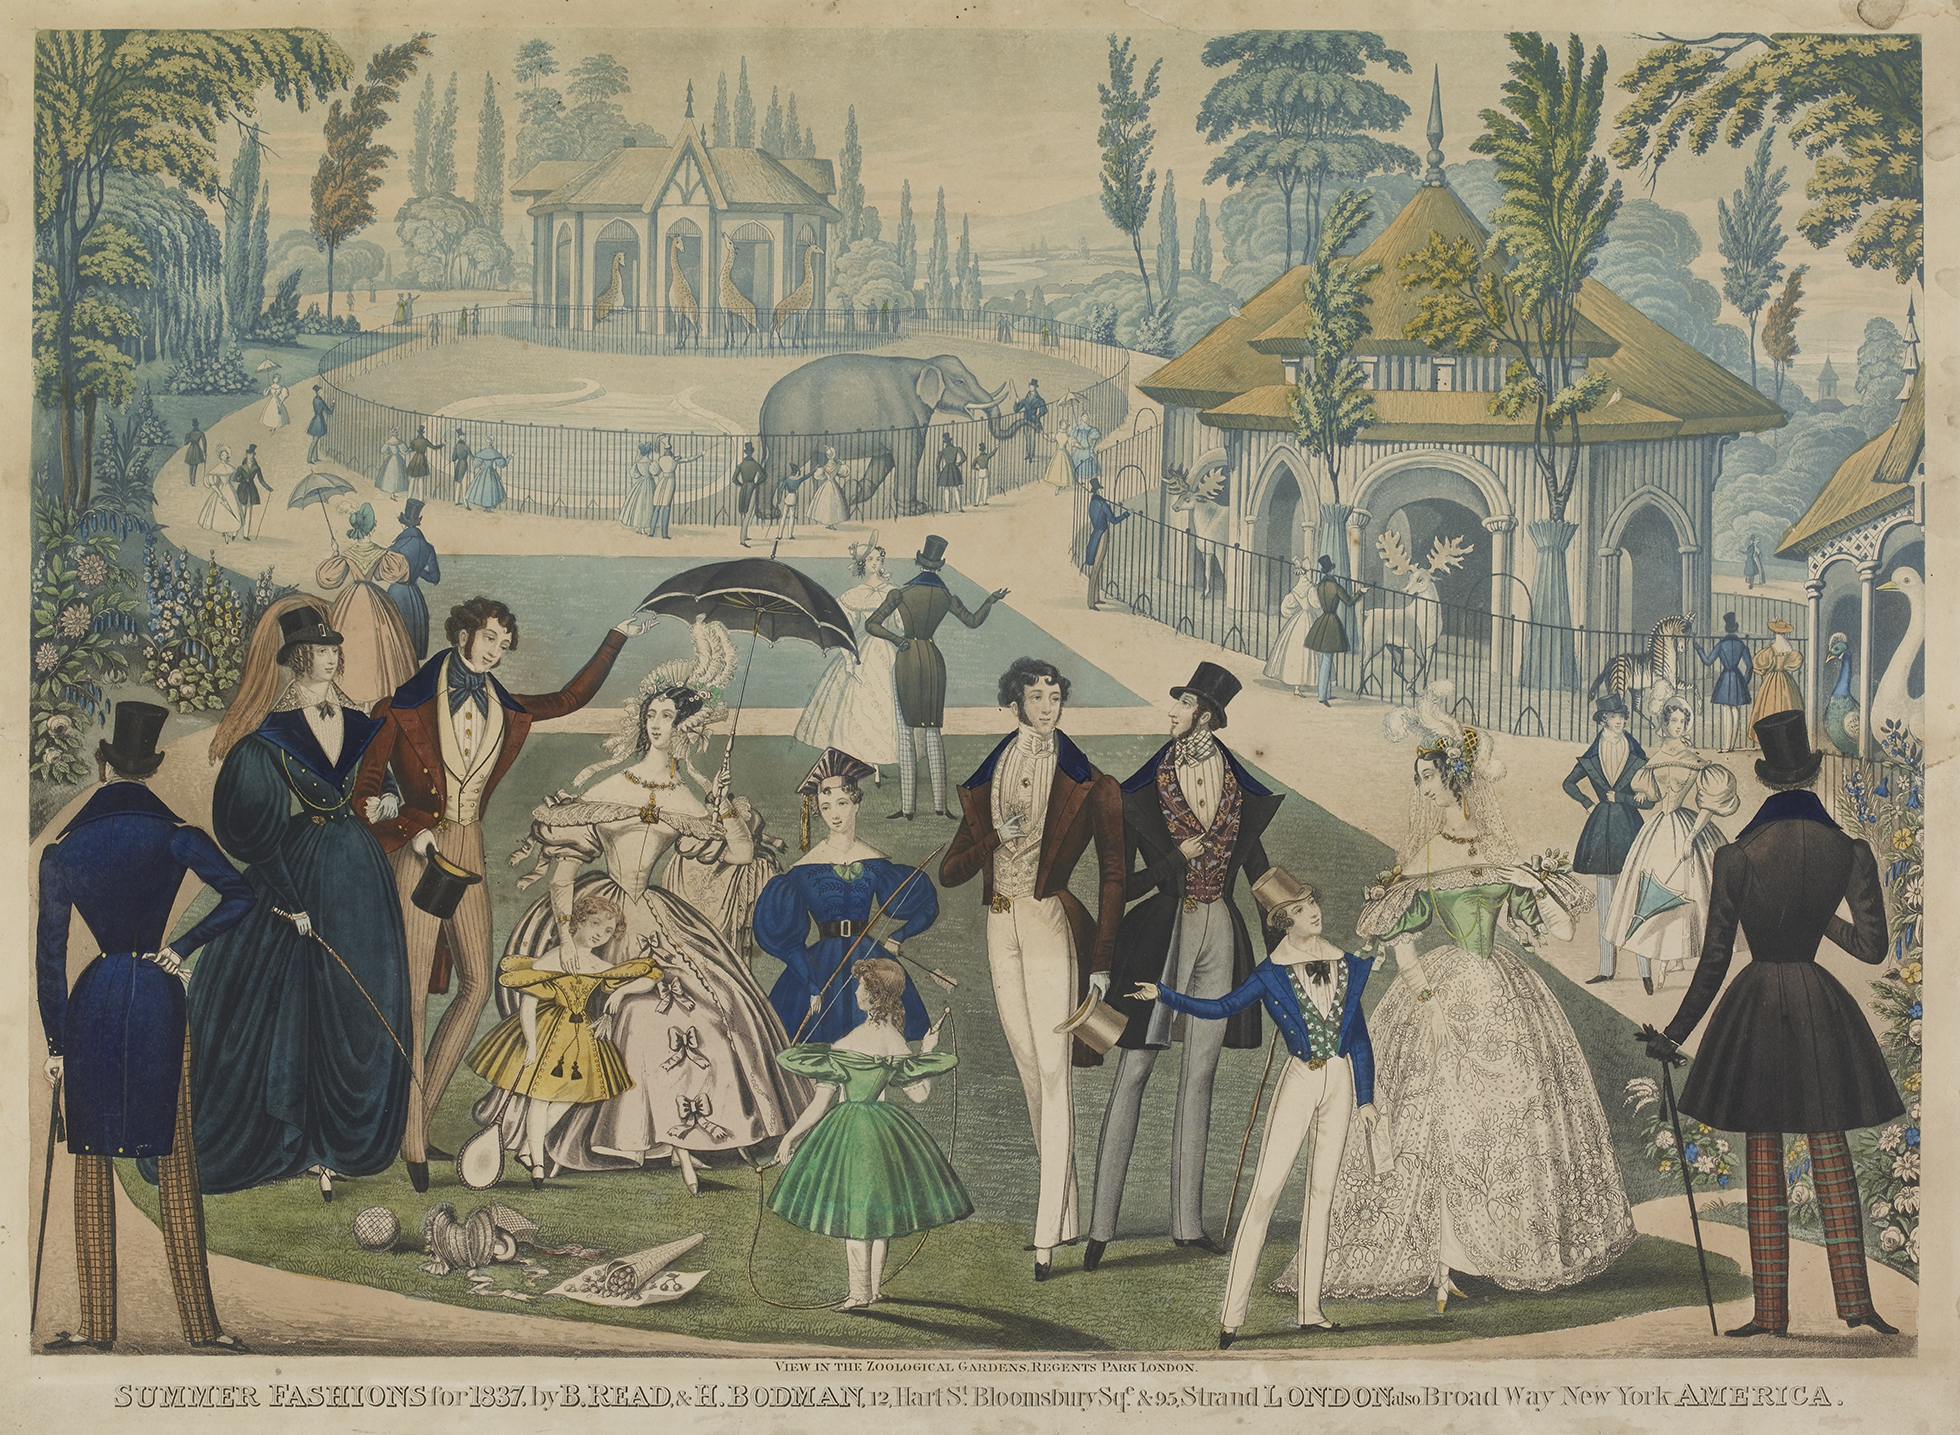 A group of men, women and children with parasols and toys displaying summer fashions in Regent's Park, with figures looking at elephants, giraffes and deer around their enclosures in the background.